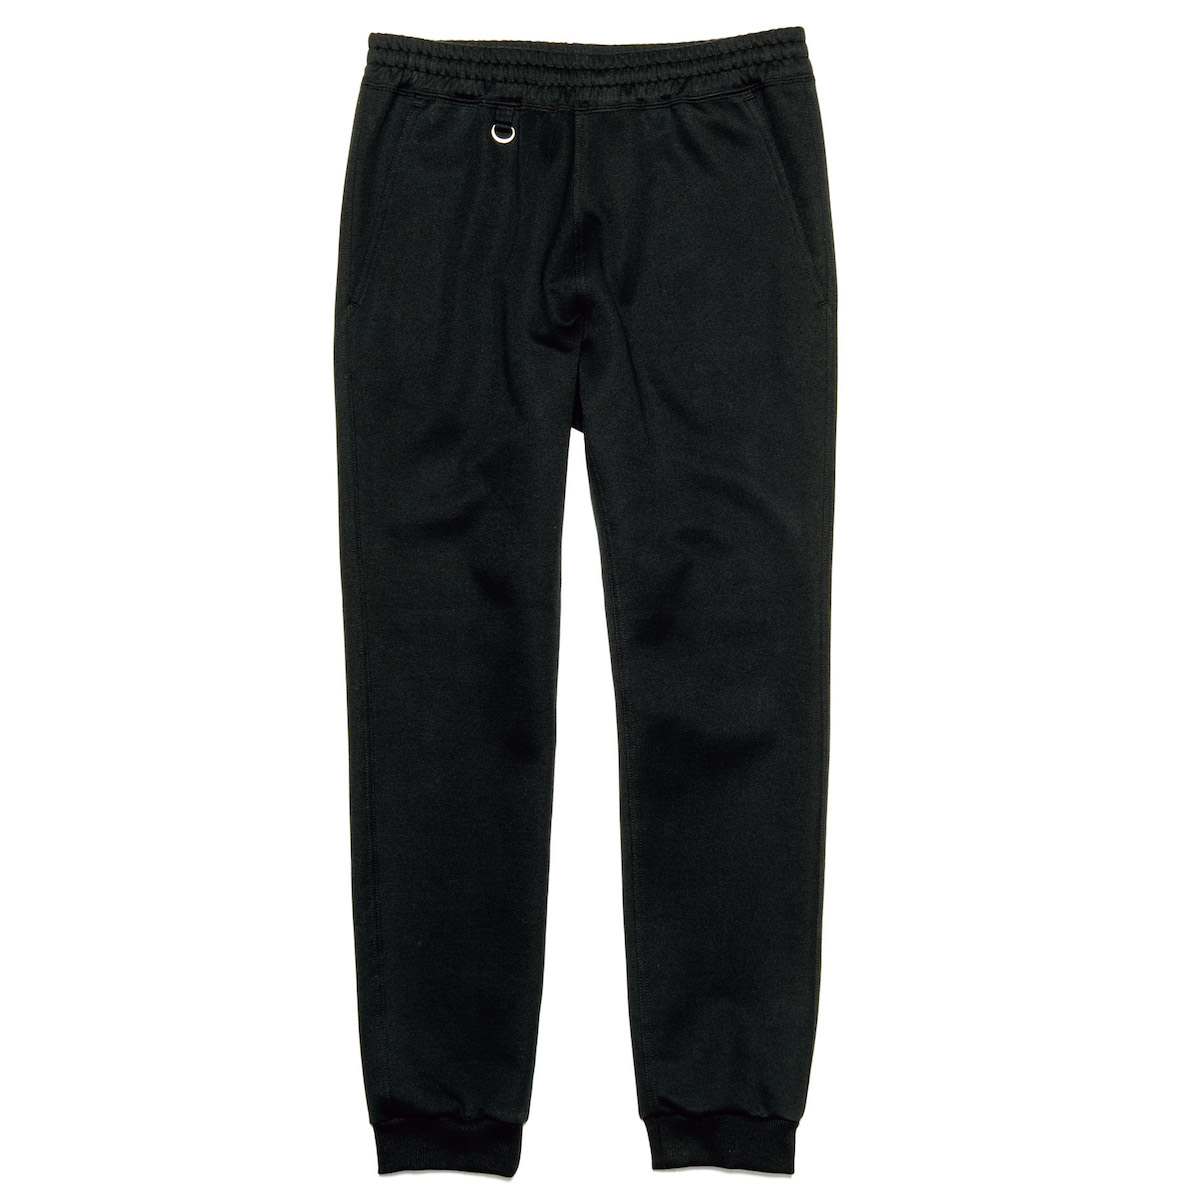 uniform experiment / SWEAT PANTS (Black)